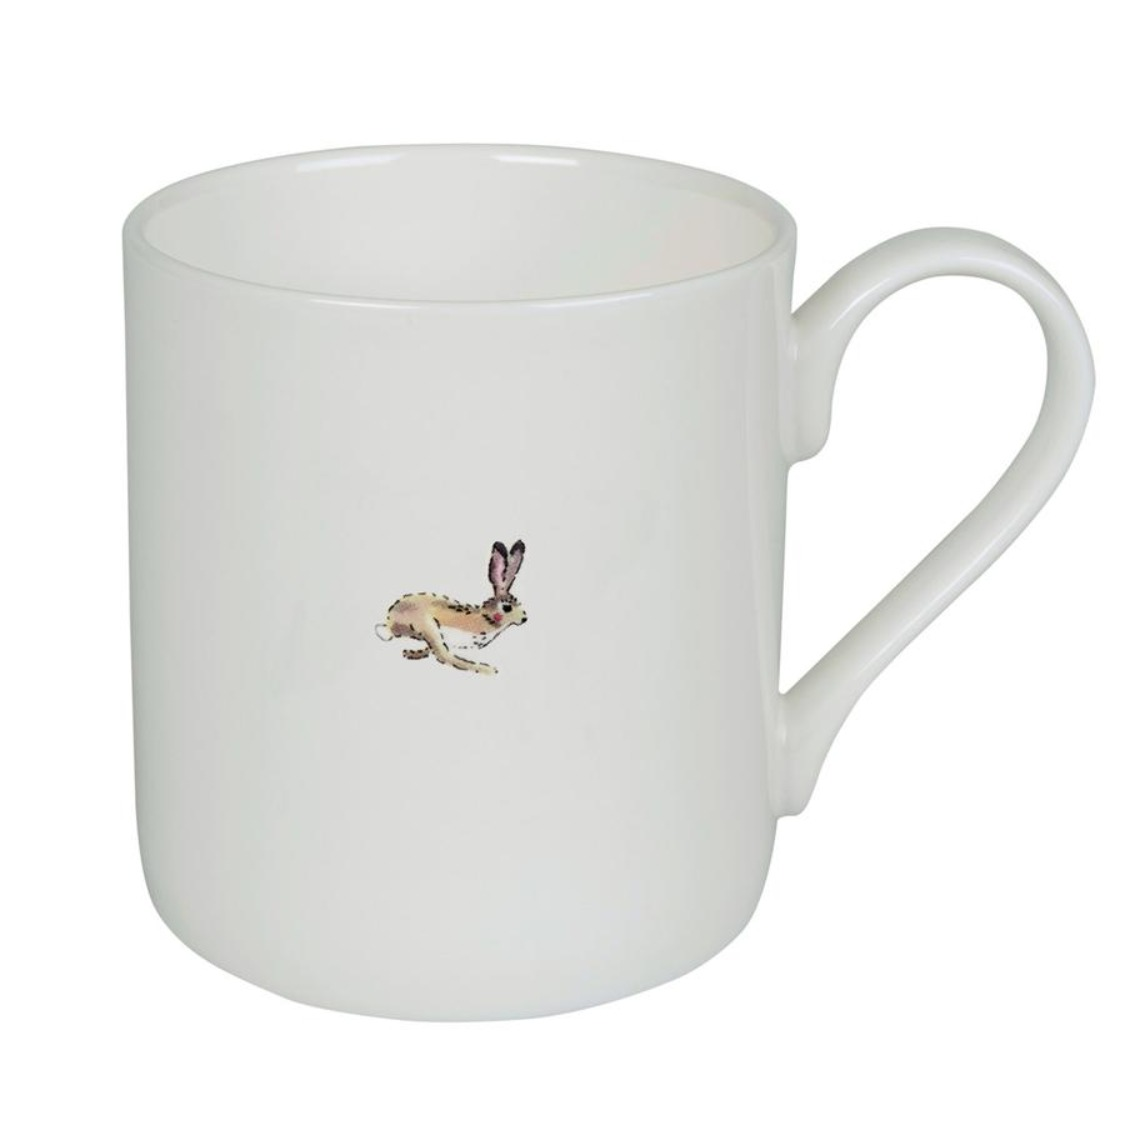 Sophie Allport bone china Hare mug